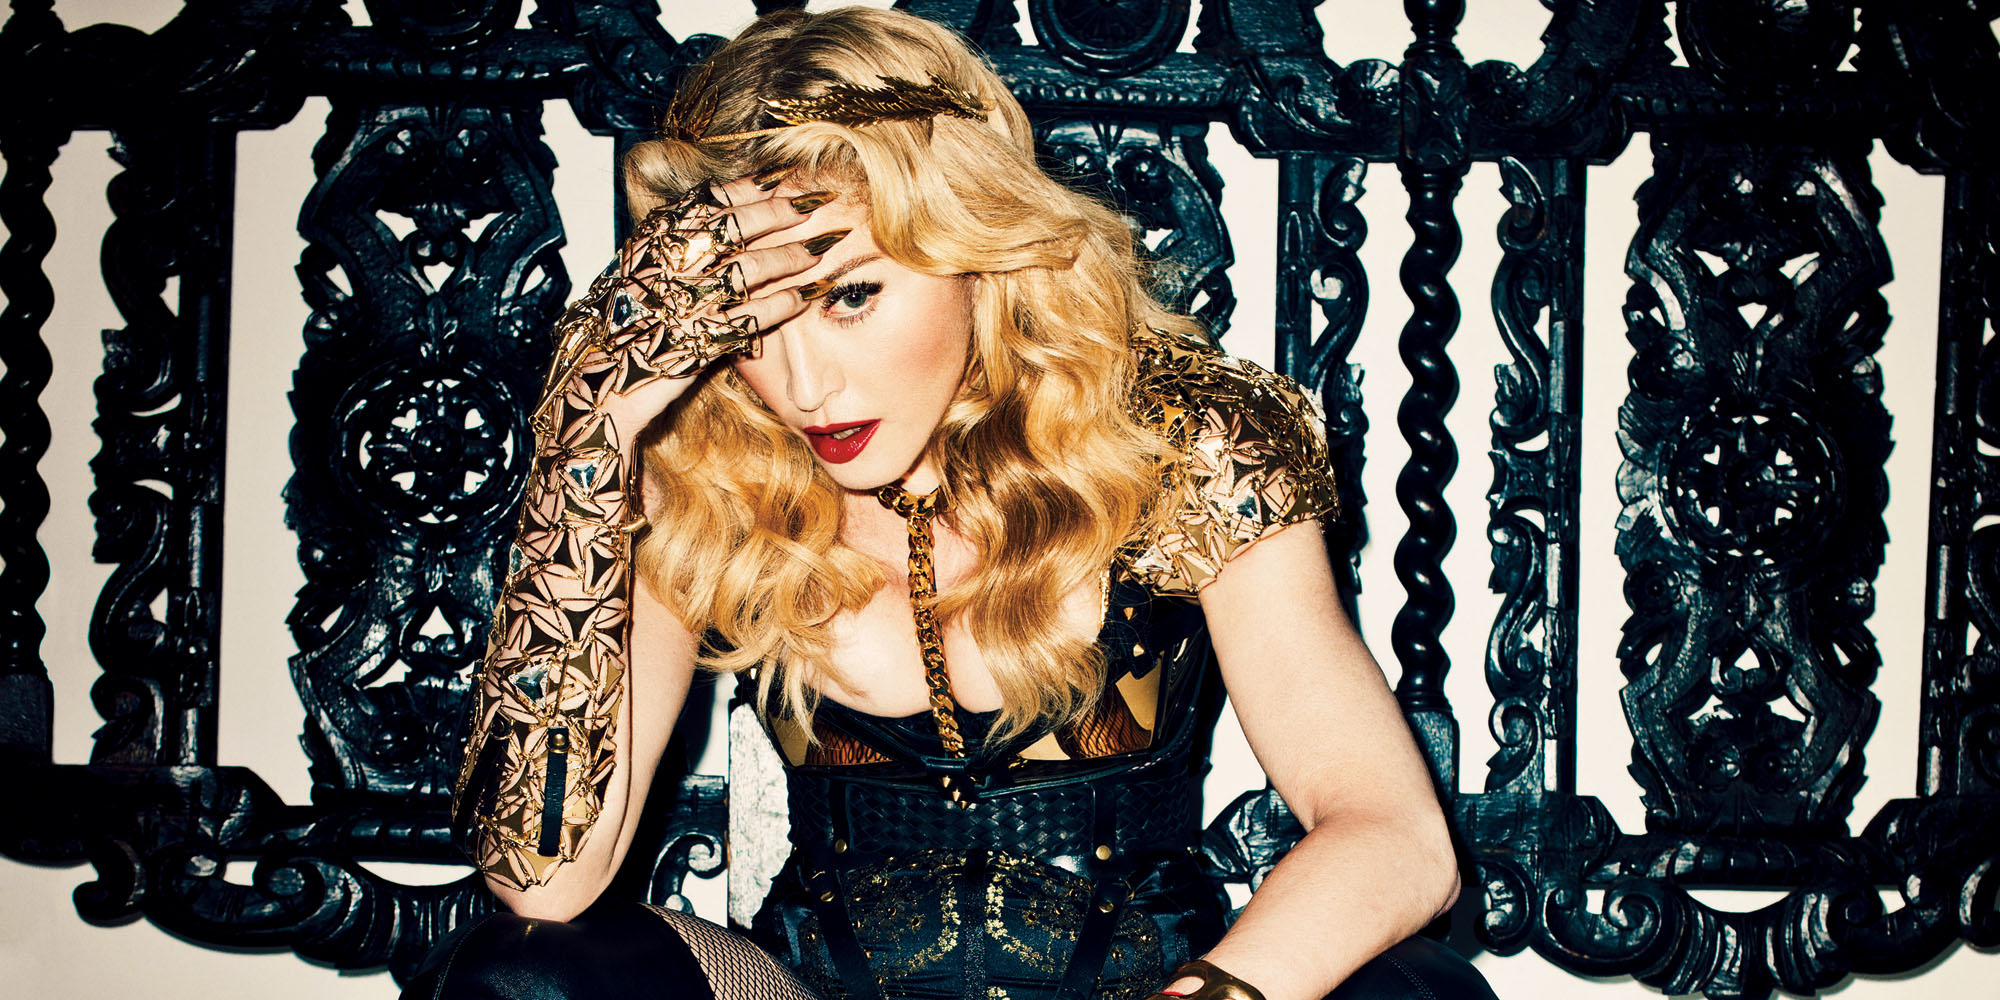 Madonna Ghosttown Video Madonna Rebel Hearst Album